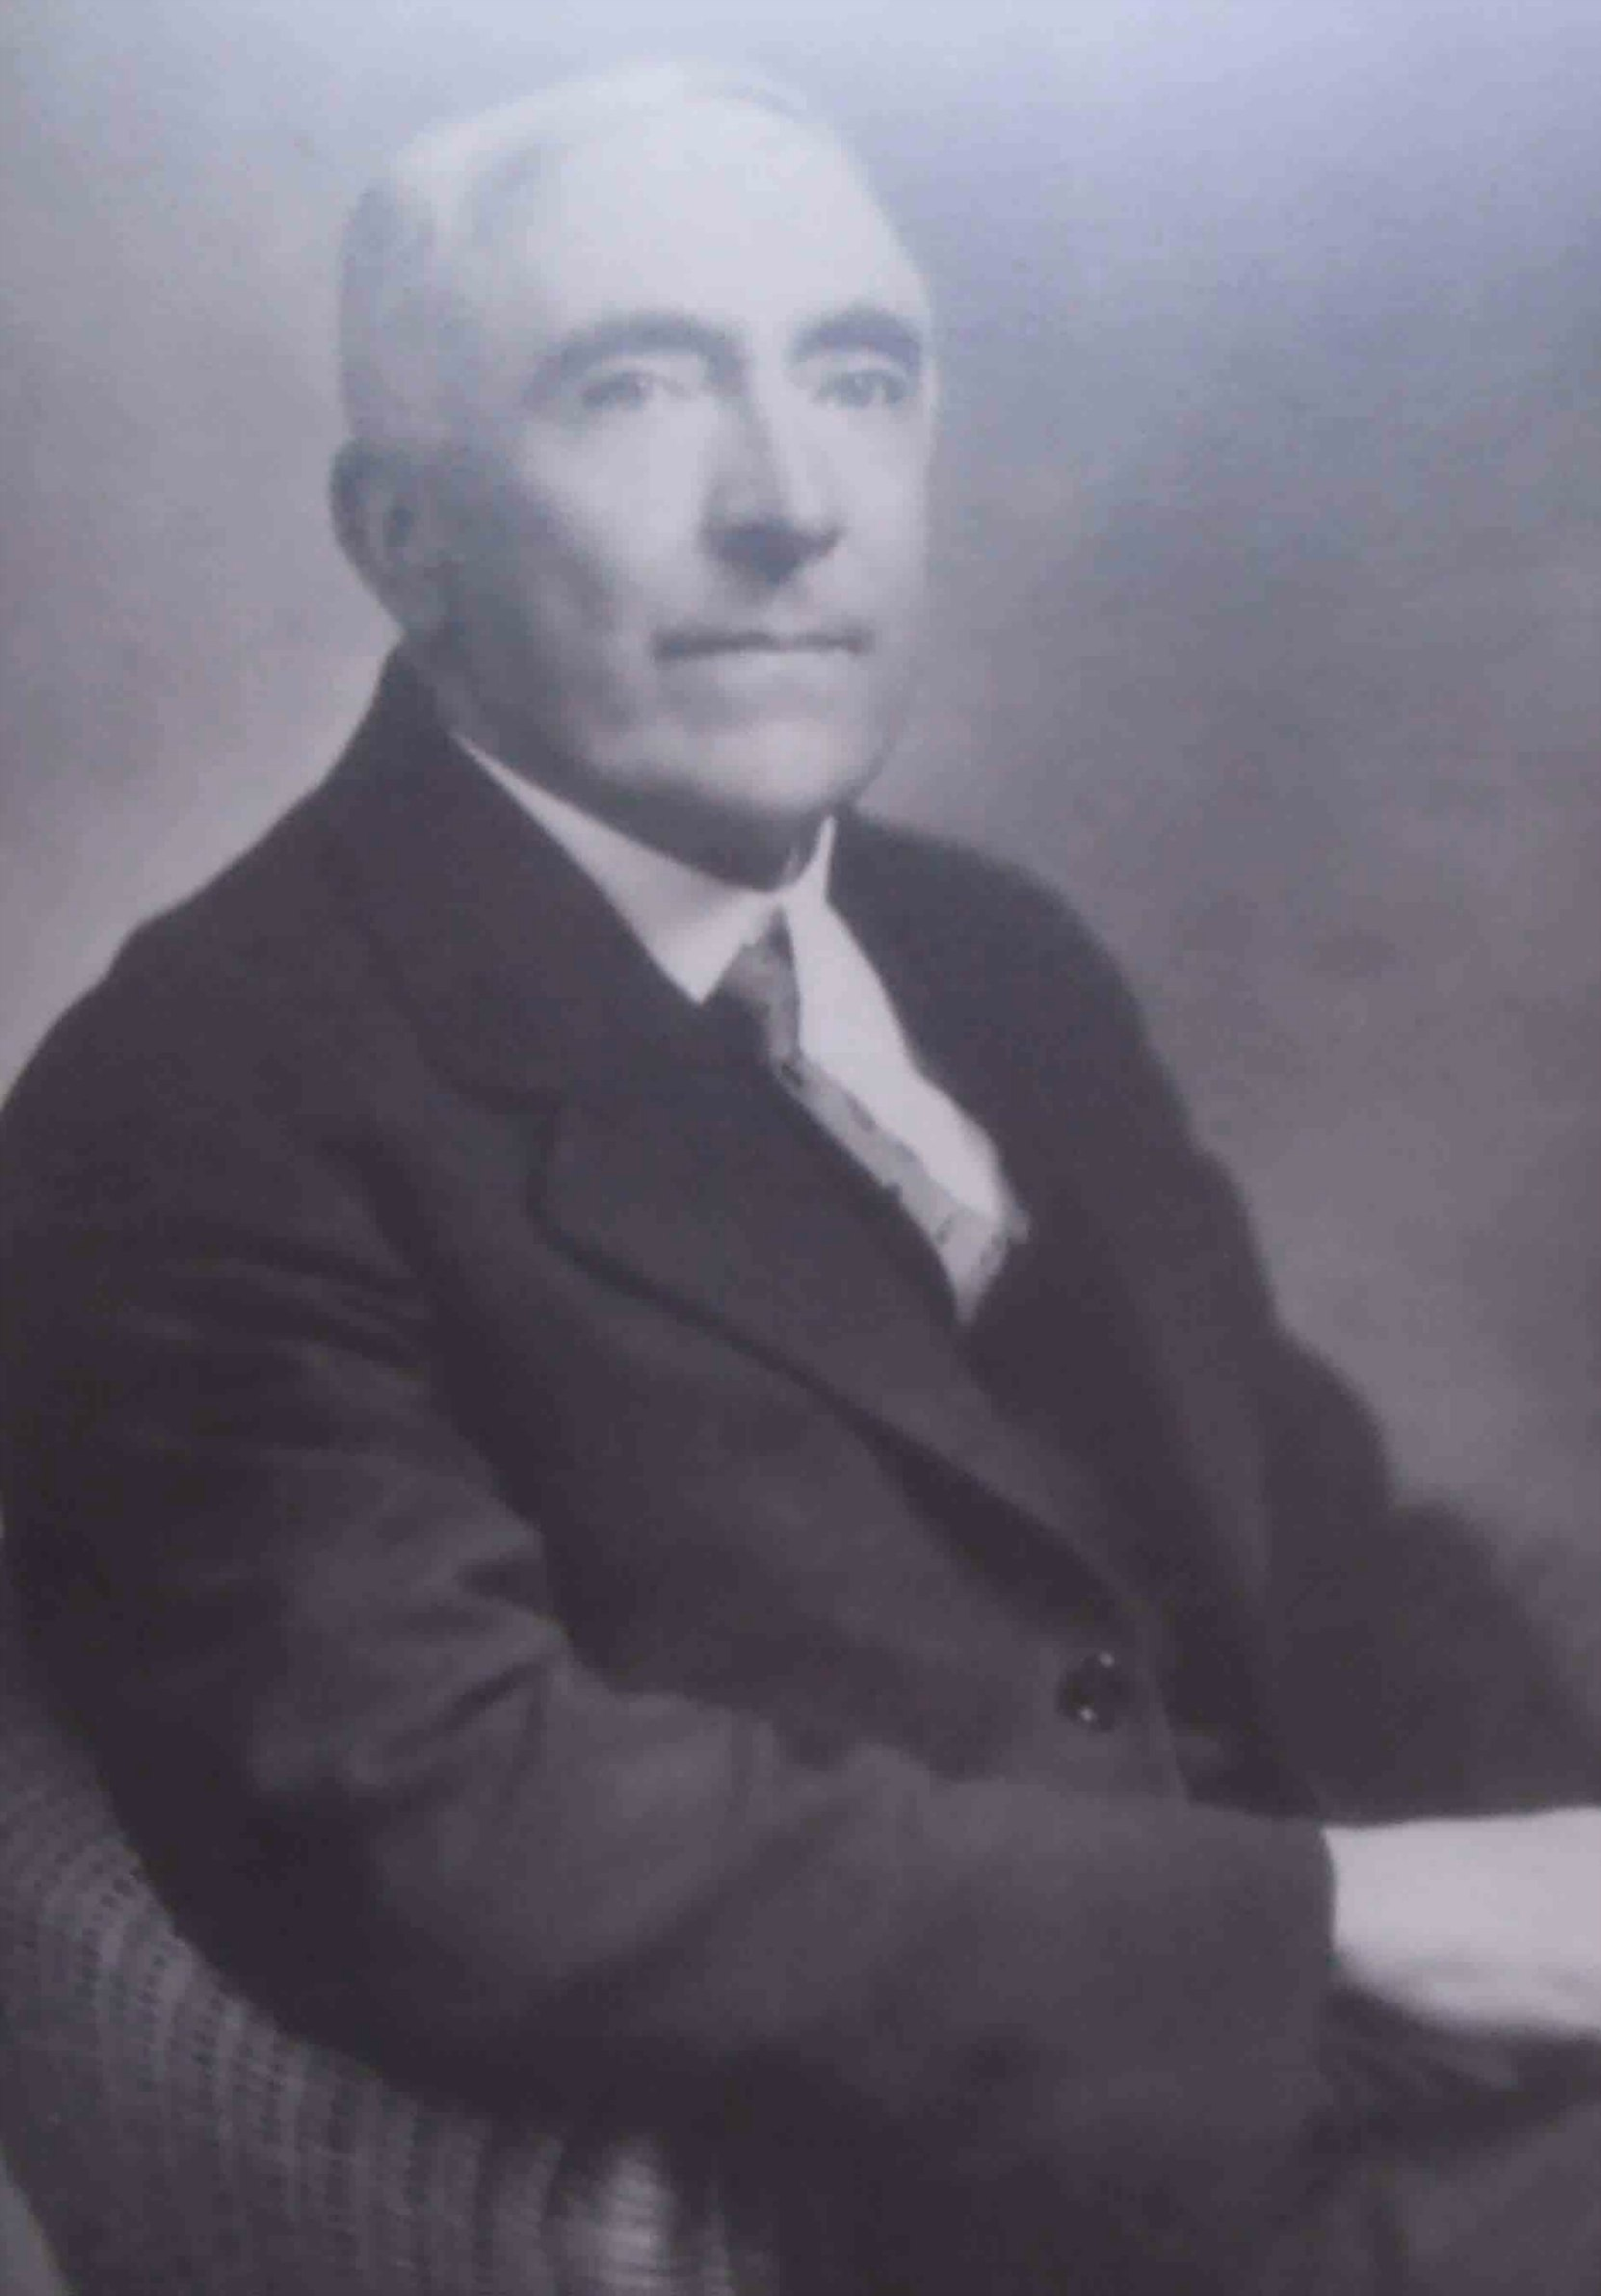 J. Islay Mutter, Mayor of Duncan and Reeve of North Cowichan